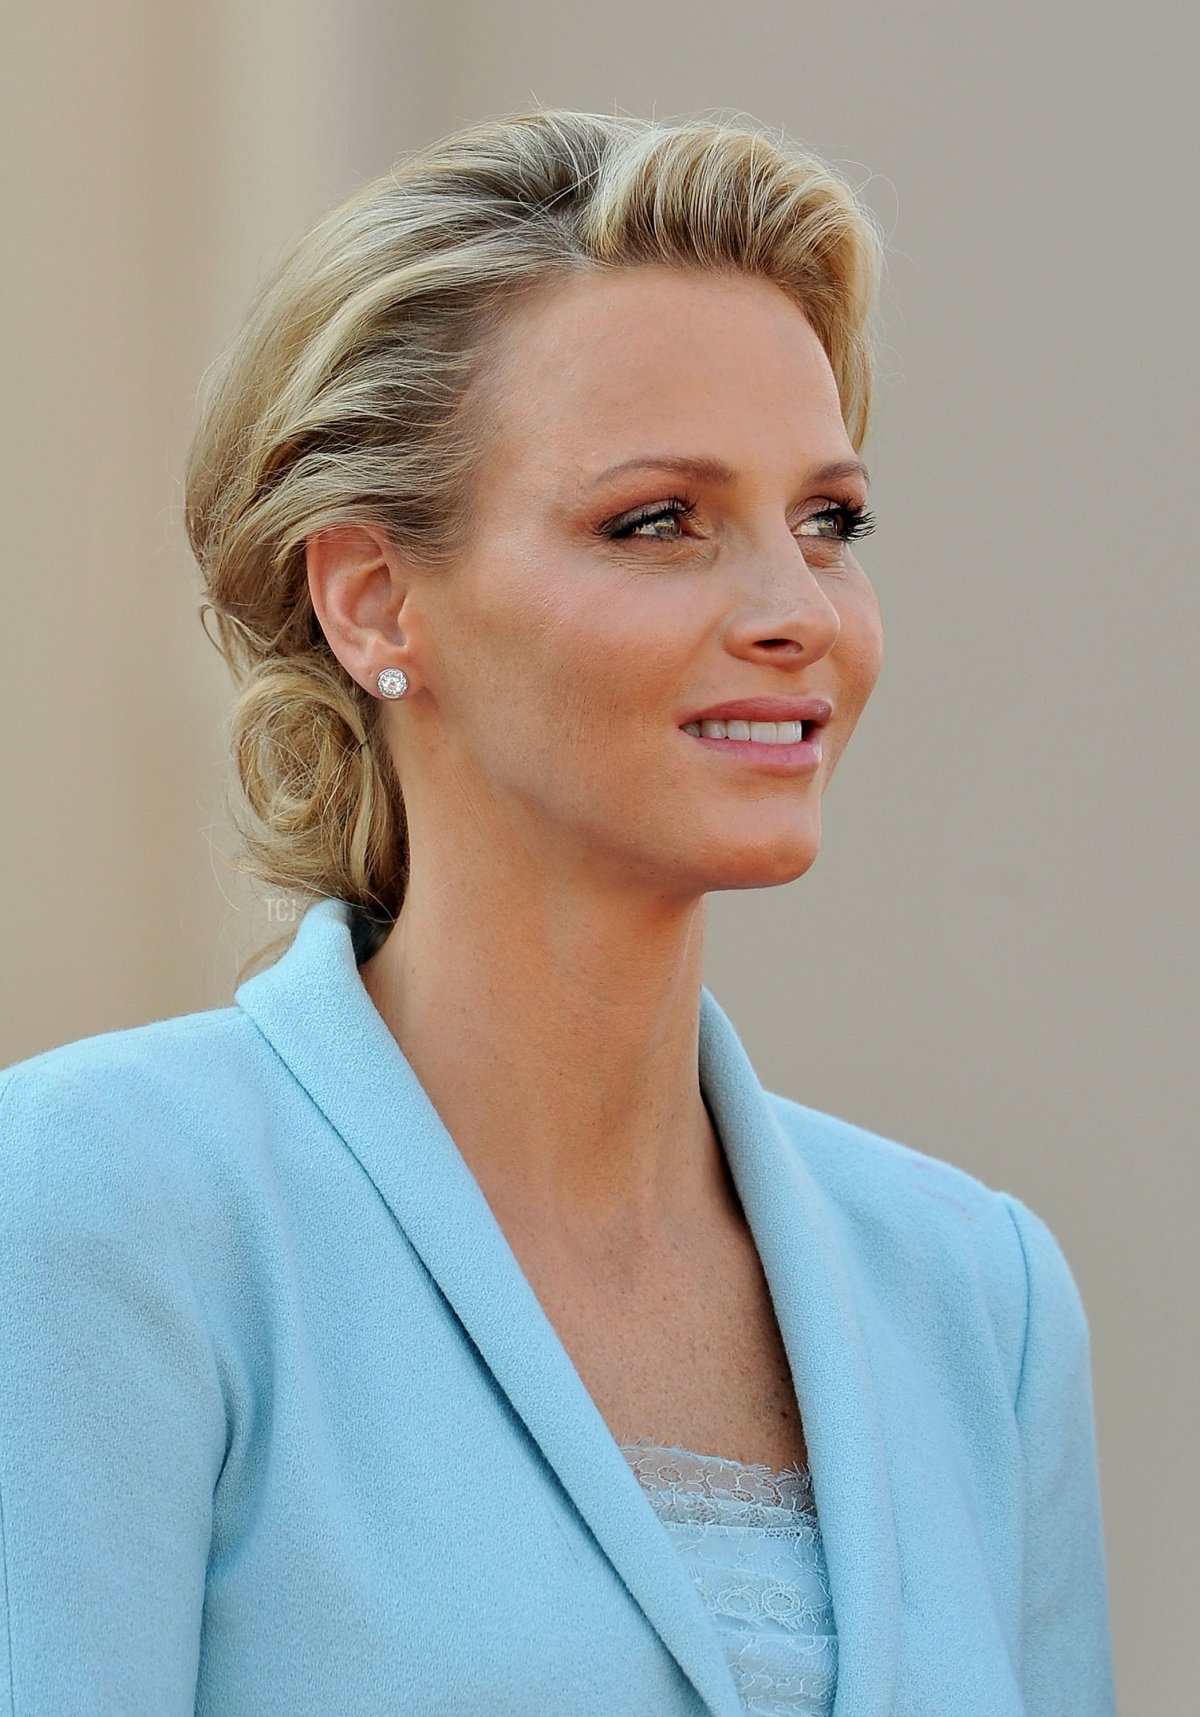 Princess Charlene of Monaco looks on after the civil ceremony of the Royal Wedding of Prince Albert II of Monaco to Charlene Wittstock at the Prince's Palace on July 1, 2011 in Monaco